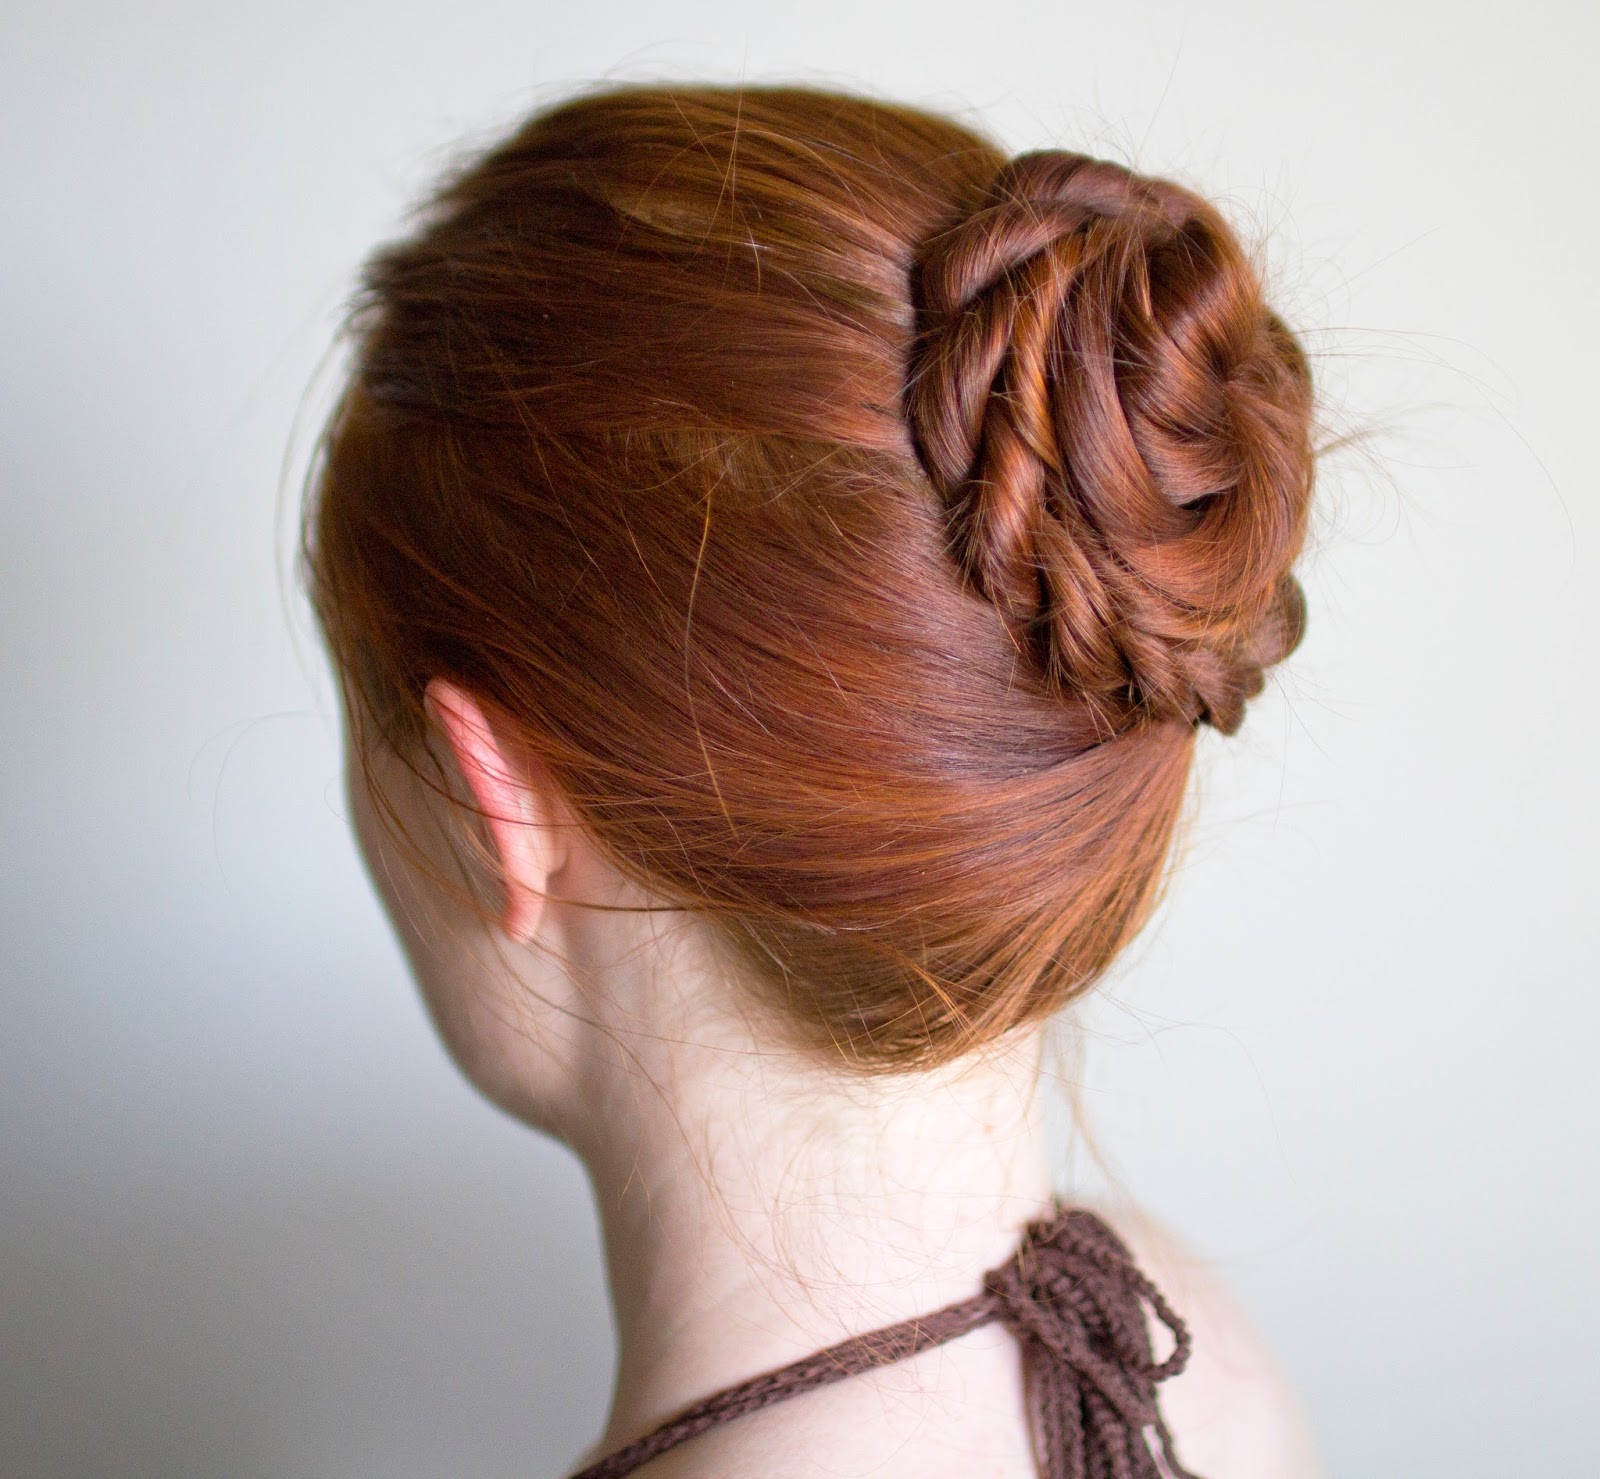 How To Do The Hairstyles From Outlander Outlander Cast Blog